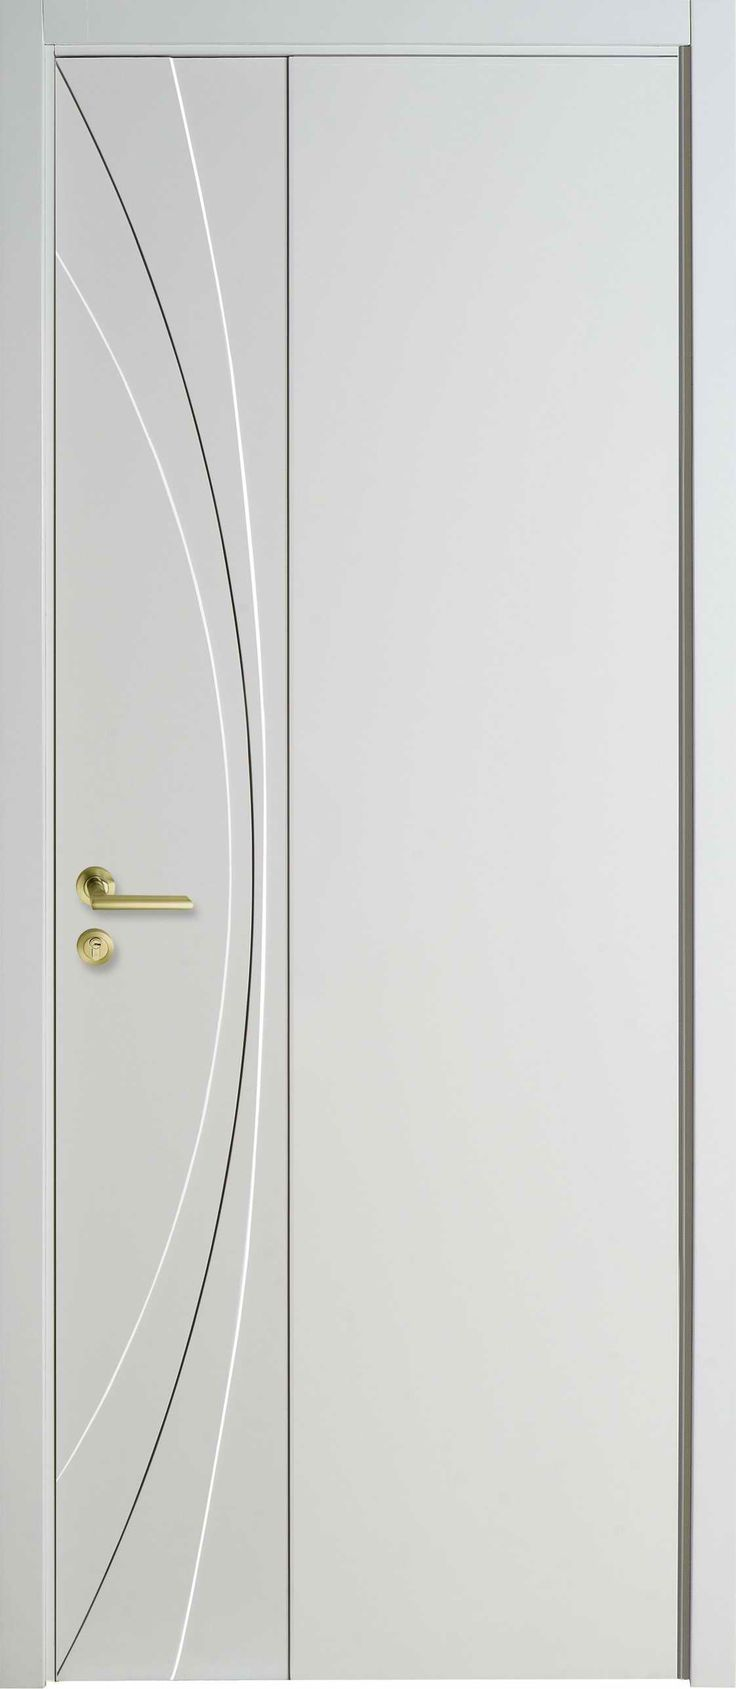 plain white interior doors. Search For Our Thousands Of Interior Wood Doors Available In A Variety Designs, Styles, And Finishes. Plain White